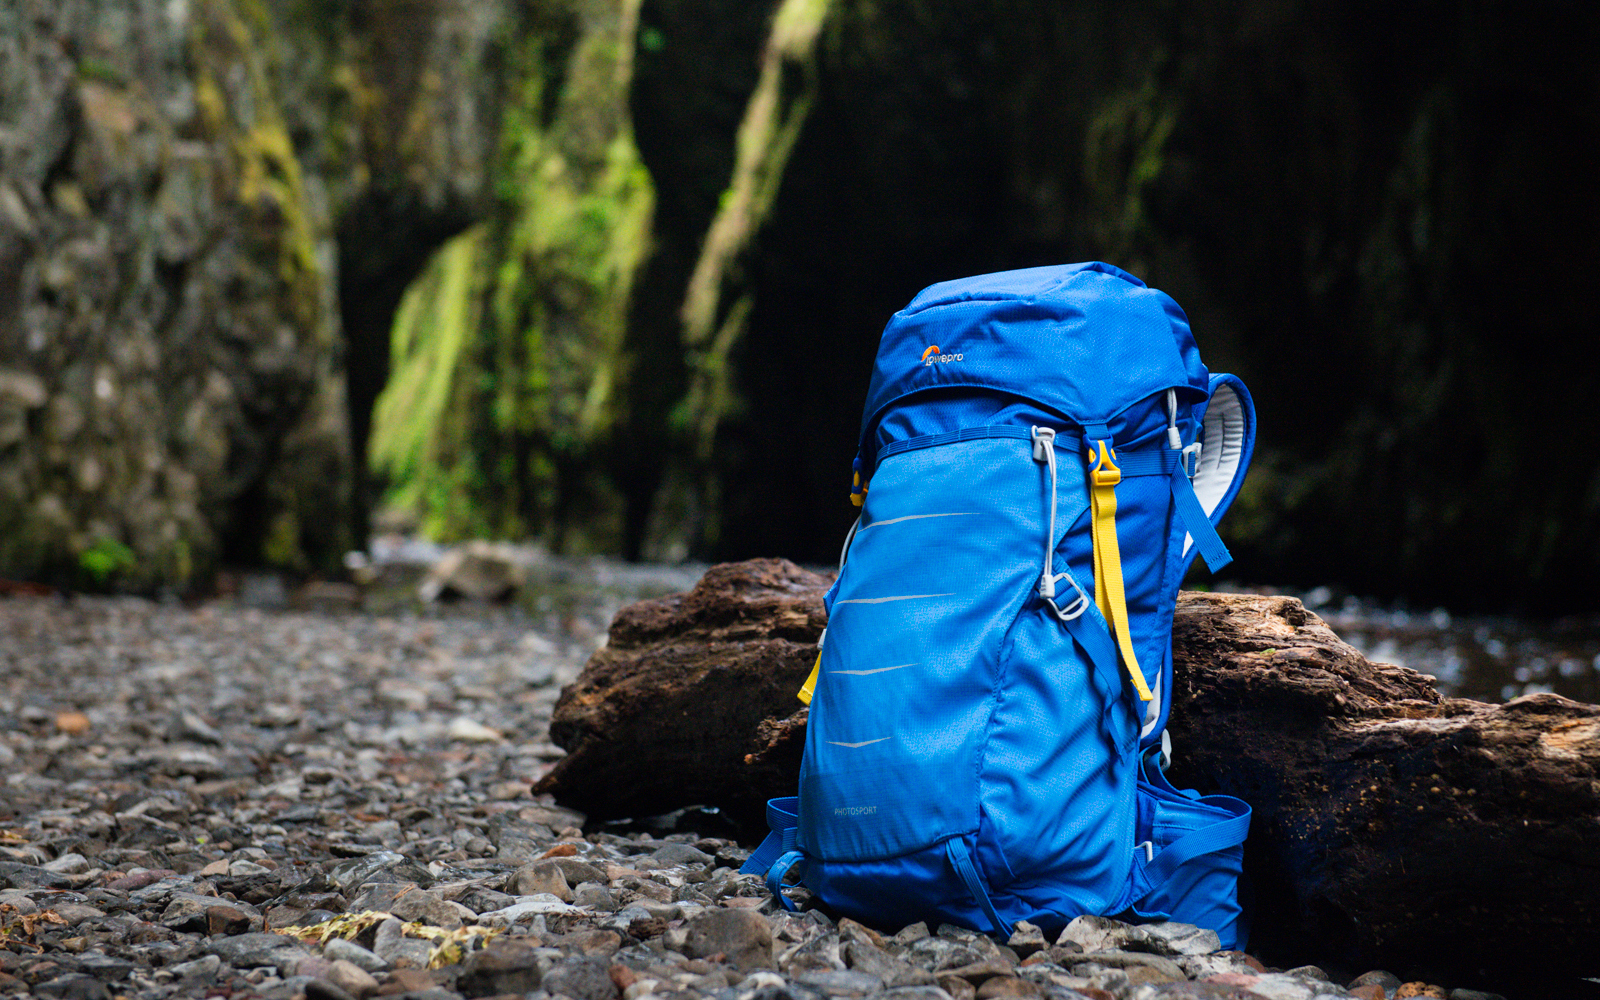 Travis Burke: A New Bag for New Adventures